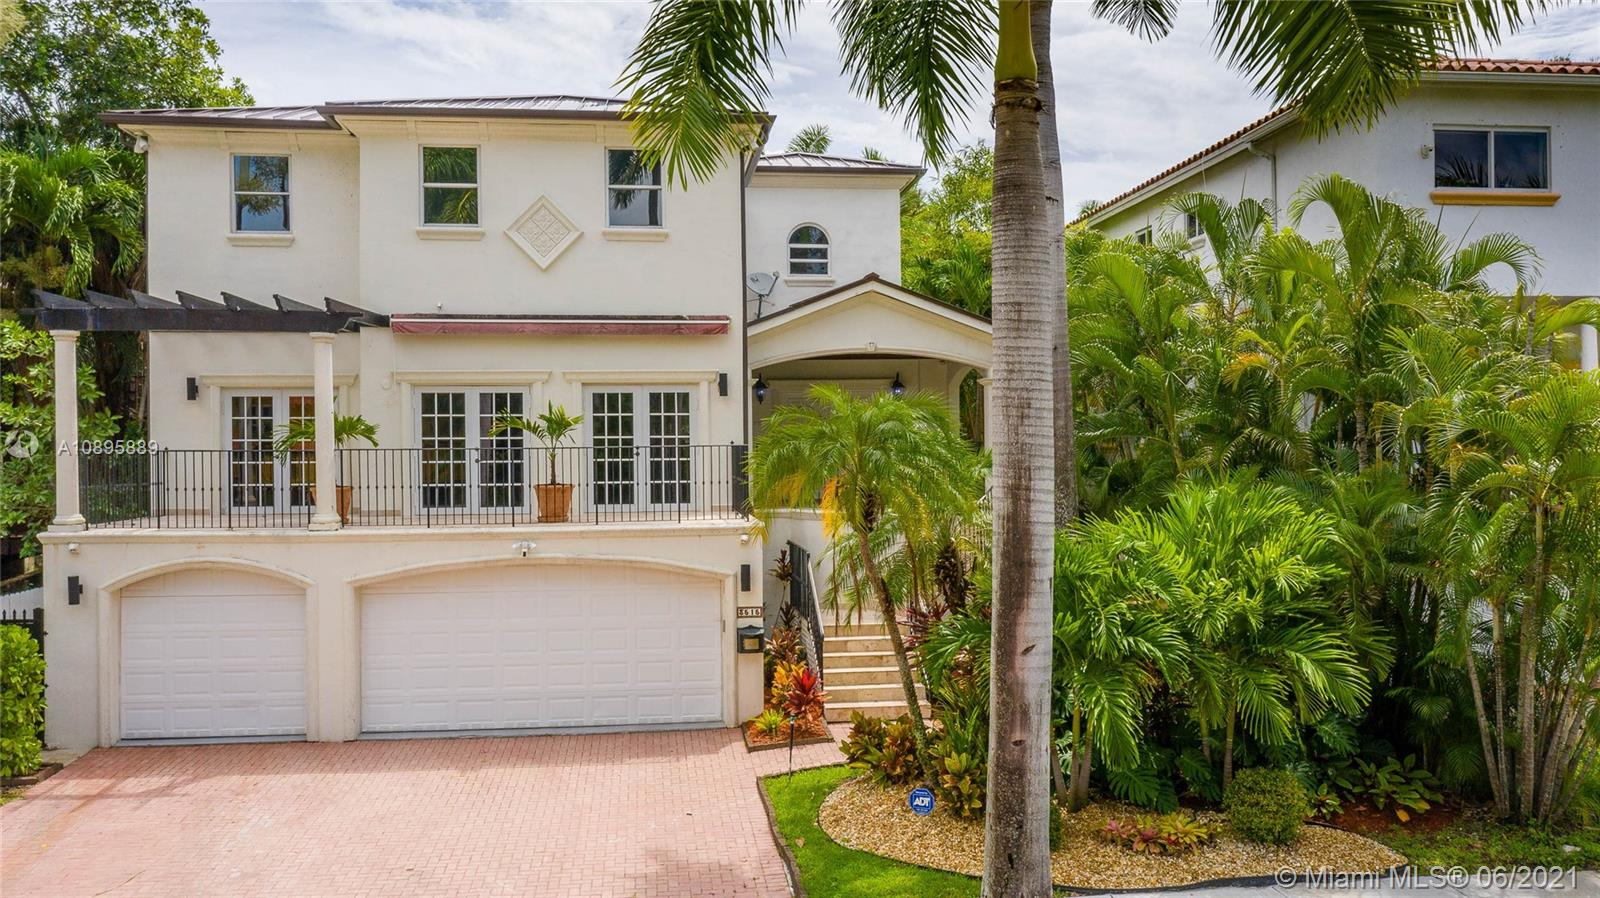 Luxurious tri-Level residence in North Coconut Grove near Vizcaya. In move-in condition. Complete smart home.Freshly painted. Brand new aluminum metal roof (2020).Marble floors throughout, all new remodeled kitchen with stainless steel appliances, gas gourmet cooktop, quartz counter top, impact windows & doors, whole house generator. 1st level 3-car garage, storage room can be wine cellar, 1/1 maids room off 1st level or cabana complete, huge covered terrace & pool, sprinkler system. 2nd level,20ft high ceilings,(2)foyers, living room,dining and family room open to kitchen, media room with full bath, wine coolers & (3) on-tap beer, pool table, theater room & more. 3rd level: Master suite with huge closets & balcony. Three additional bedrooms and (2) bathrooms.